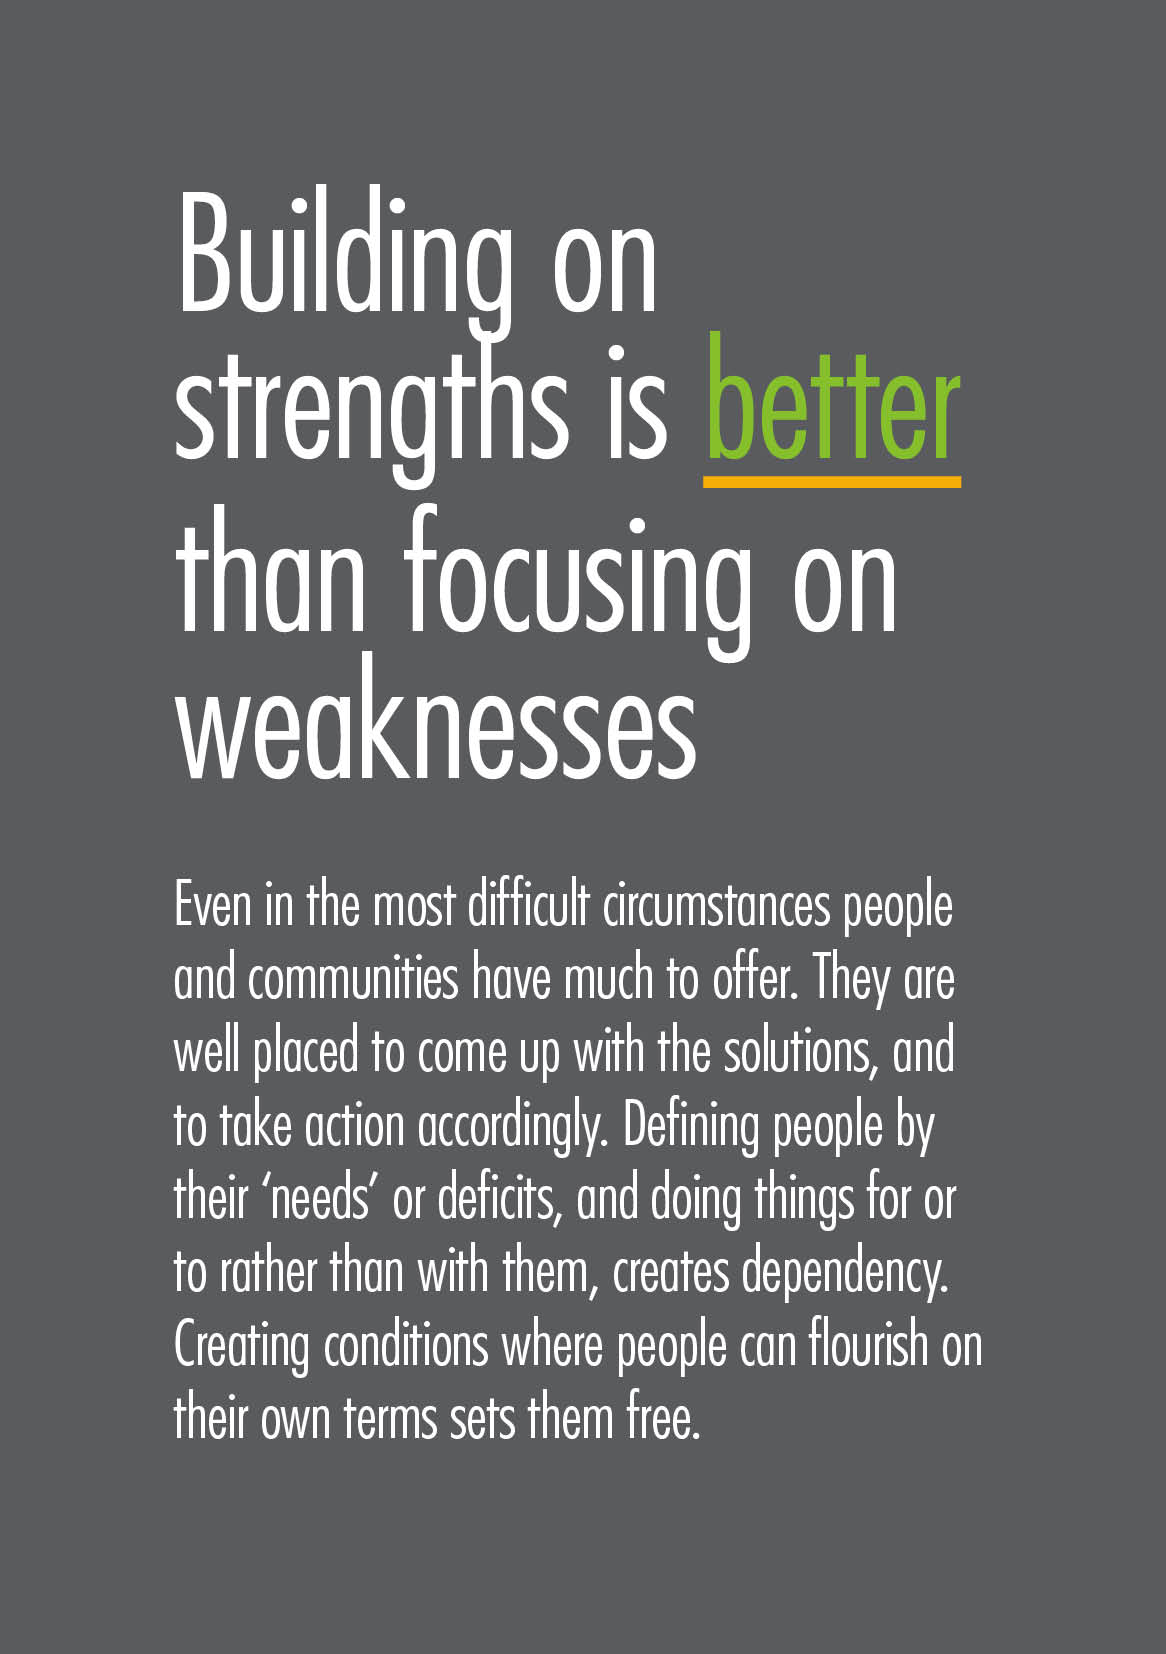 Building on strengths.jpg